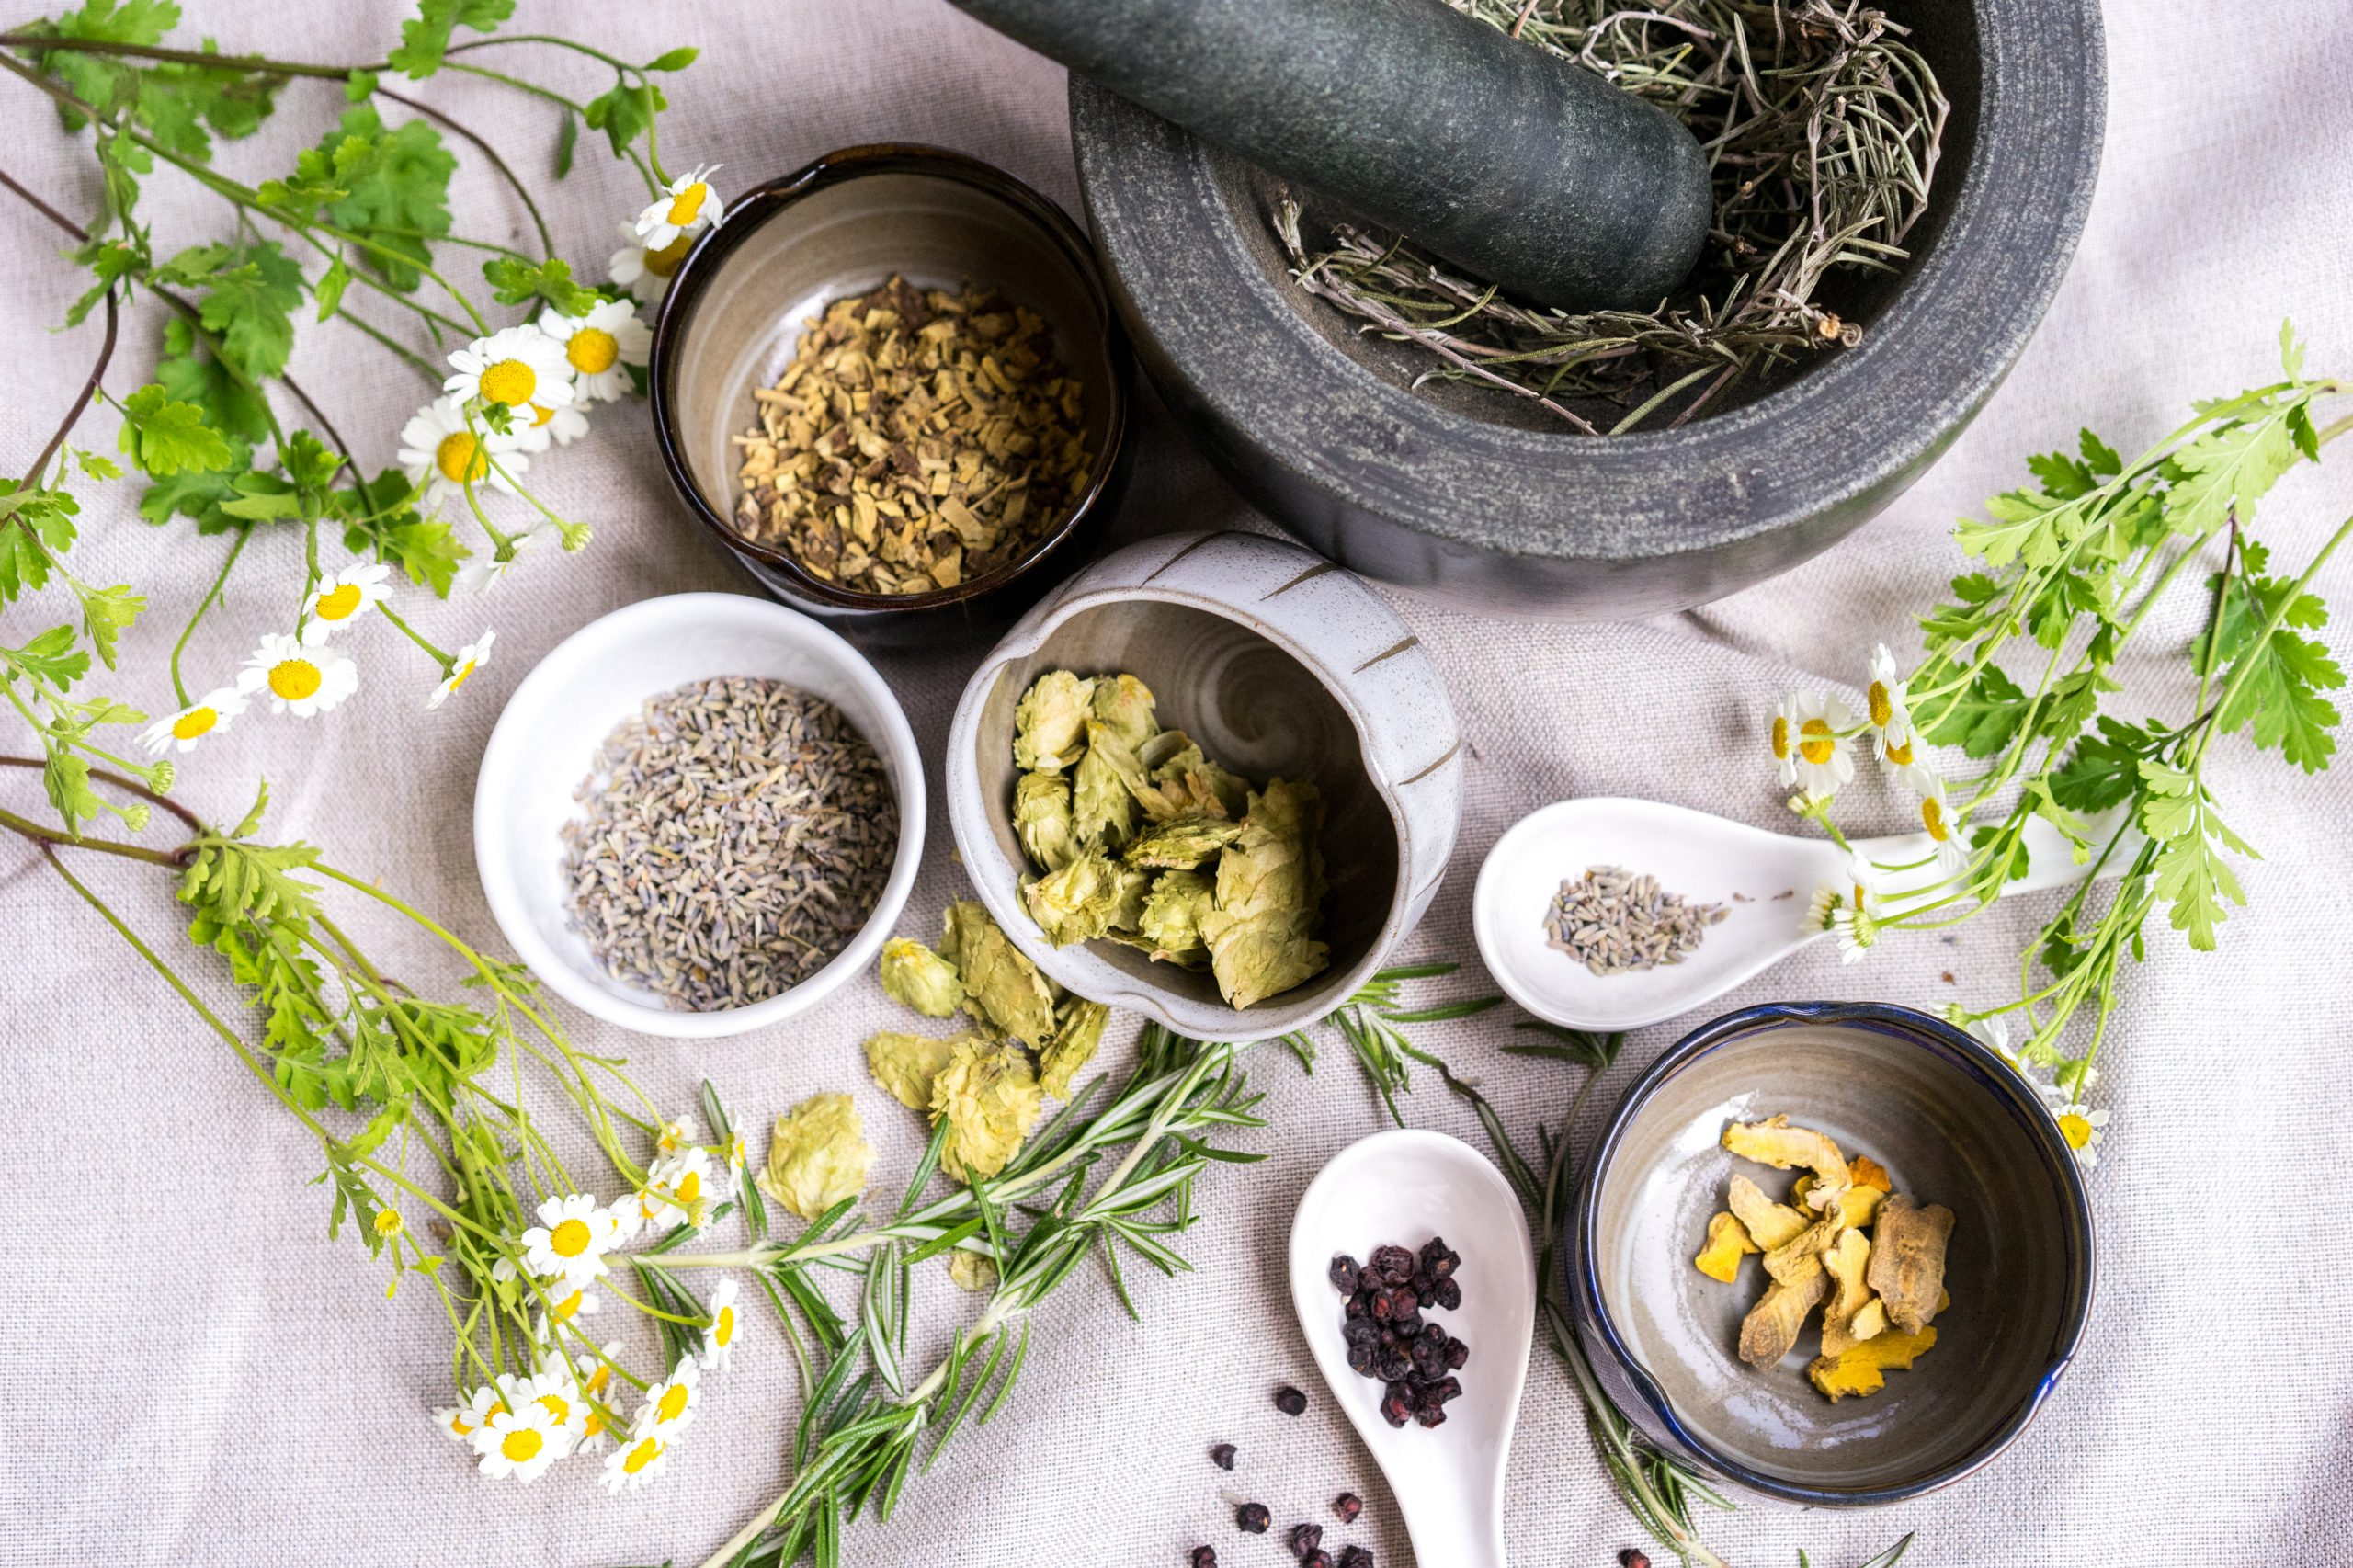 dried herbs and flowers to make tea next to a mortar and pestle